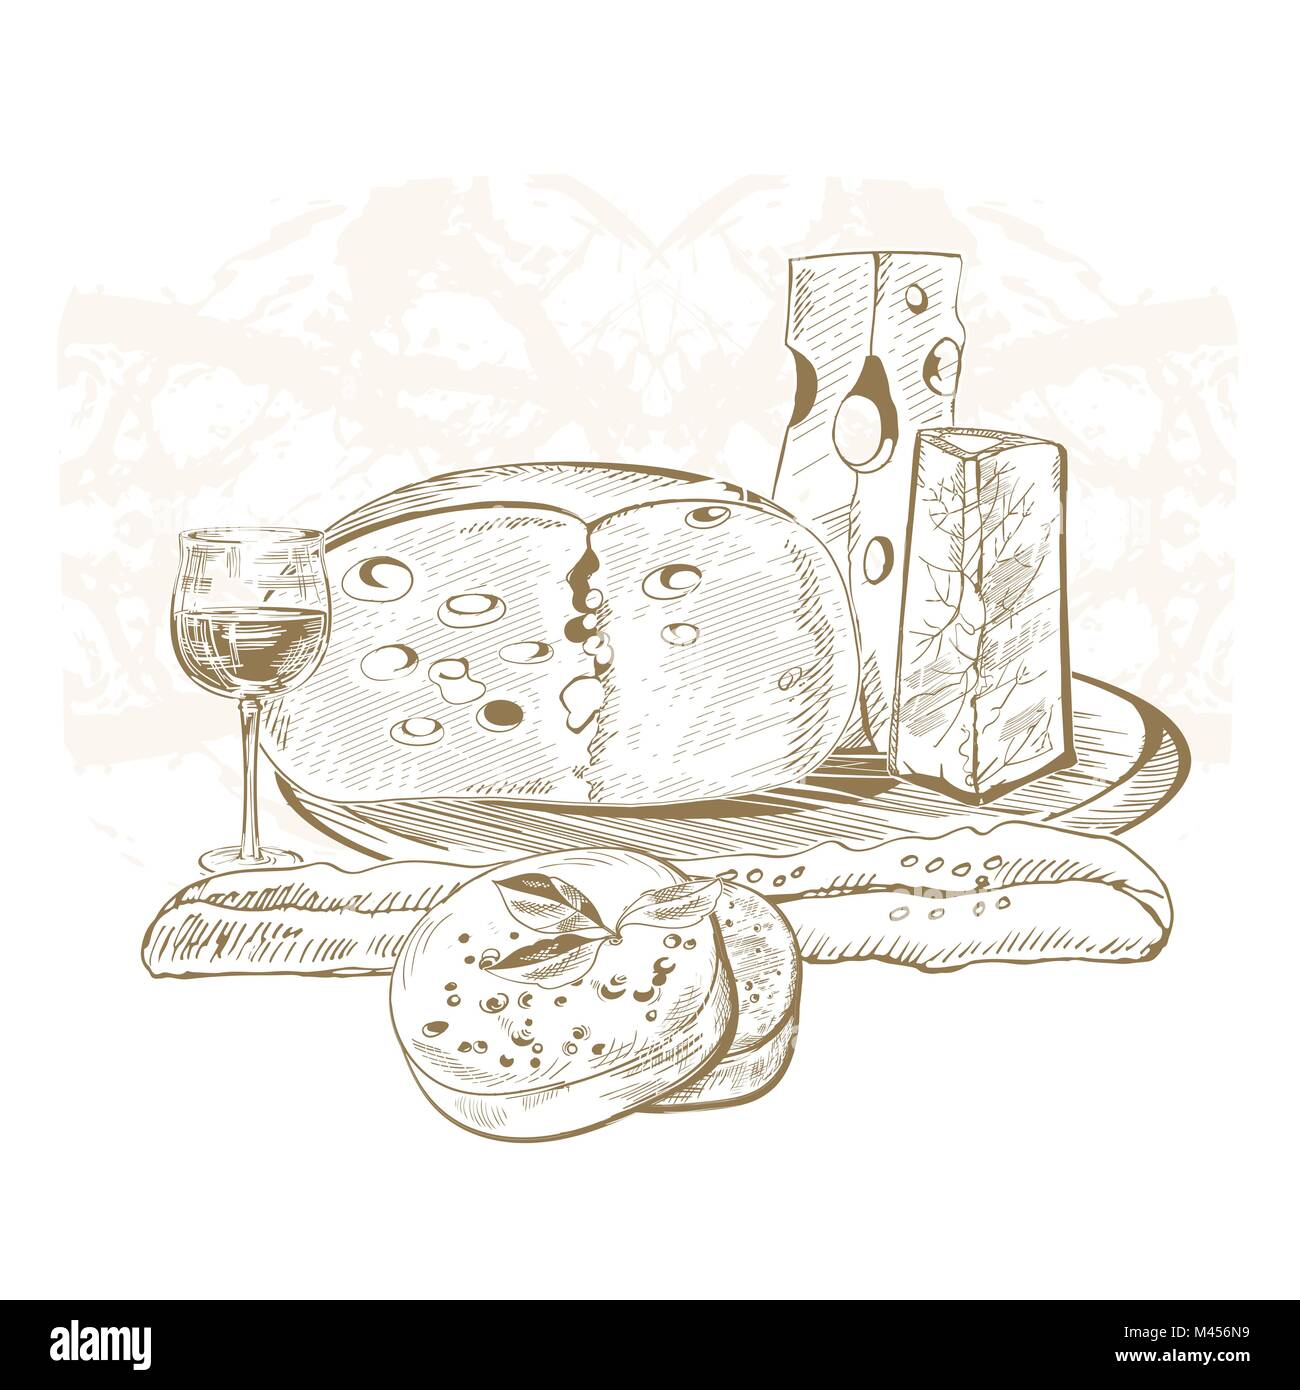 Creative conceptual vector. Sketch hand drawn cheese illustration, engraving, ink, line art, vector. - Stock Image